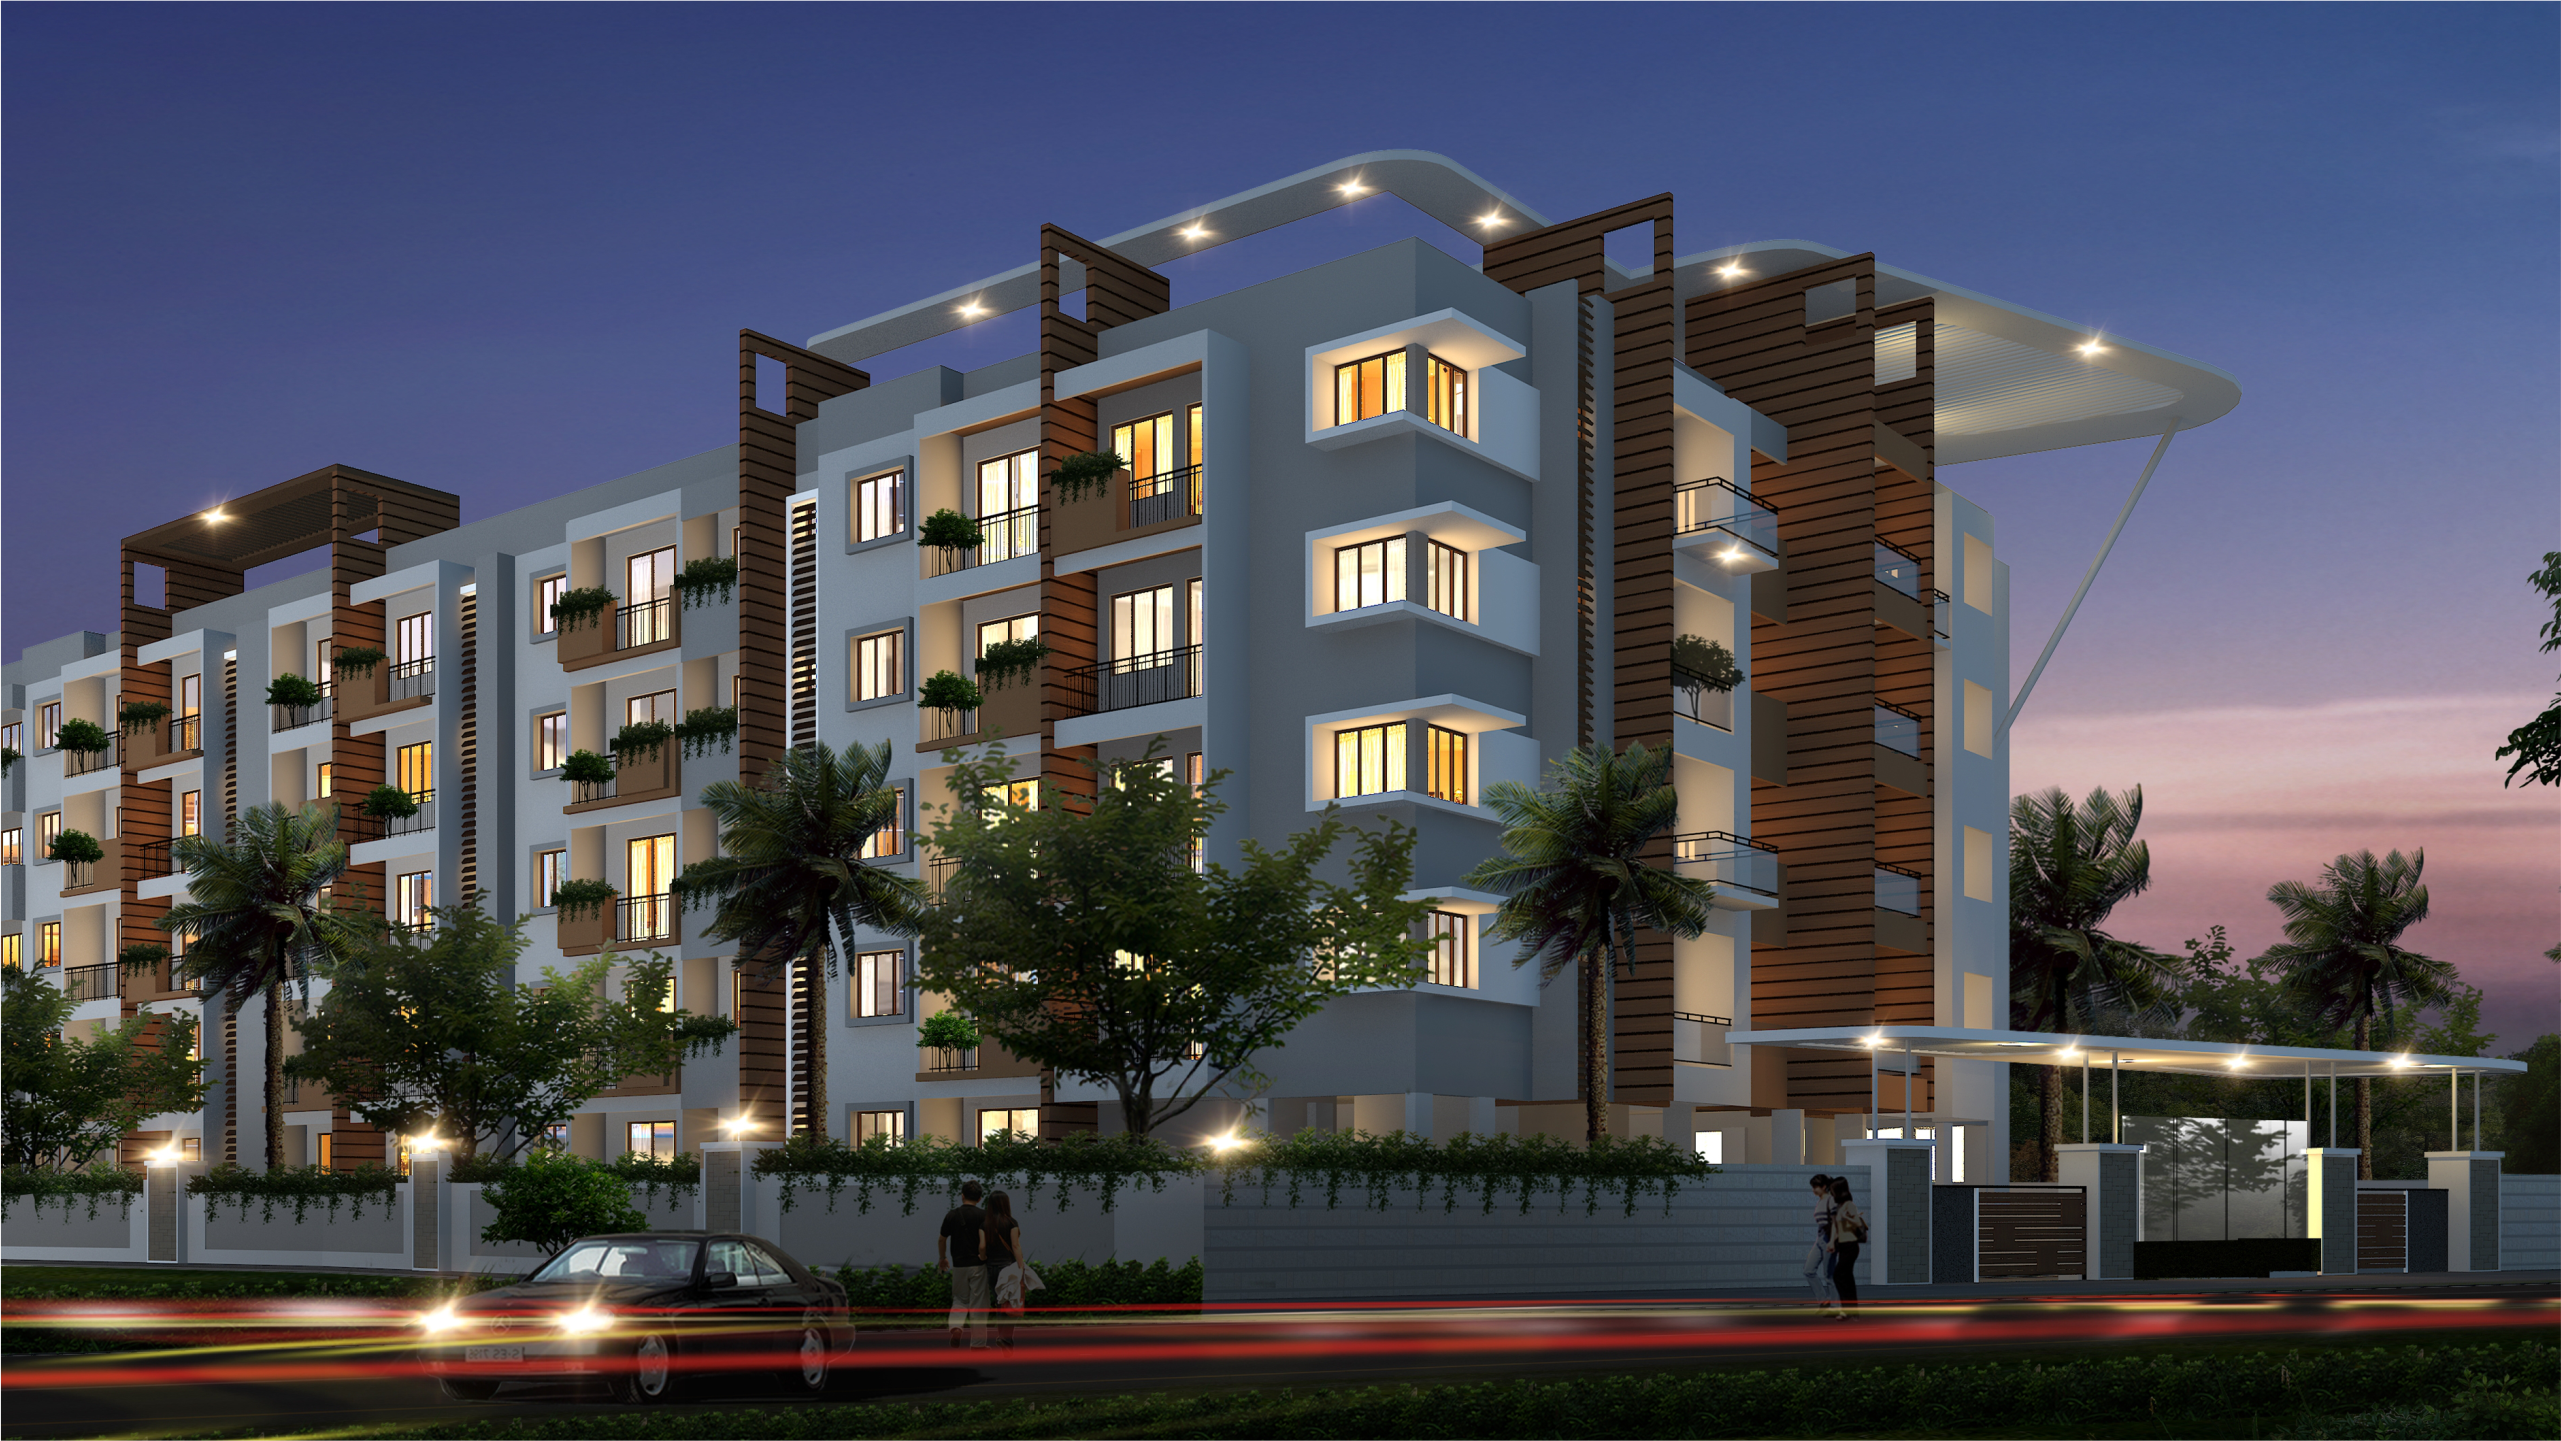 2 3 Bhk Apartment In Whitefield Bangalore Indra Keerthi Sadan Is One Of The Leading Builders Developers Luxury Residential Apartments With